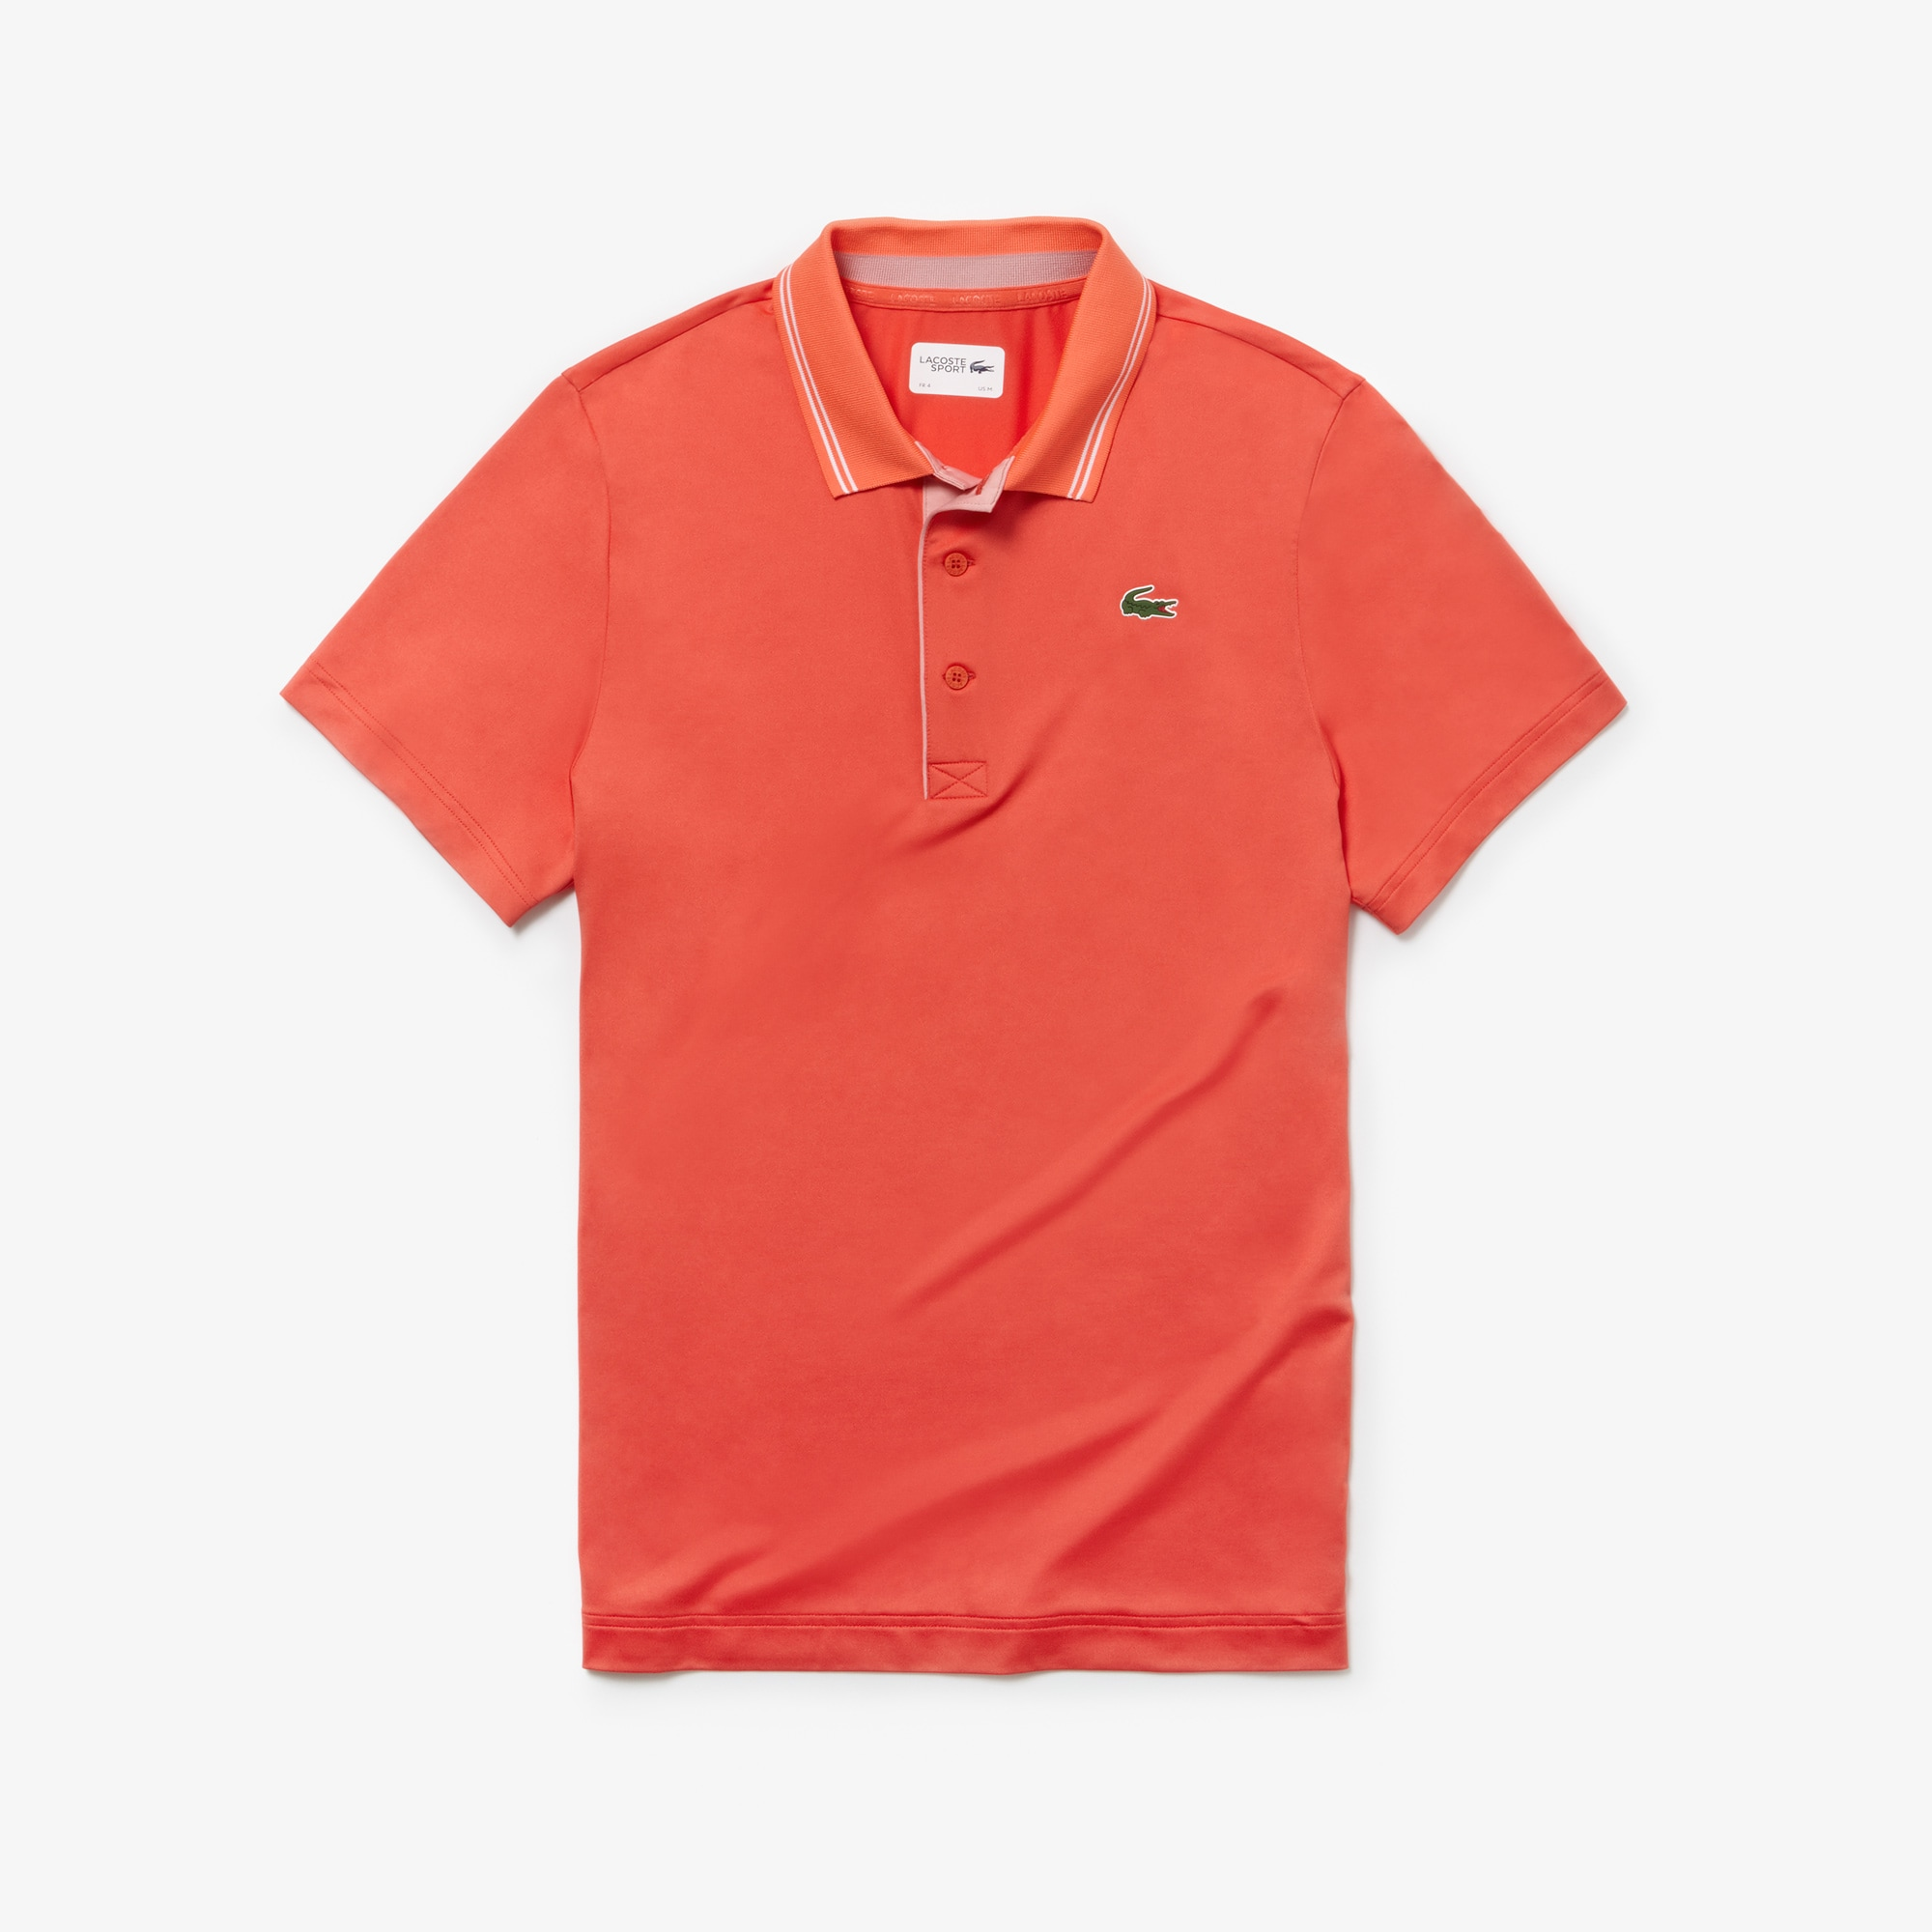 4149e71f Lacoste Men's Sport Lettering Stretch Technical Jersey Golf Polo Shirt In  Red / White / Pink